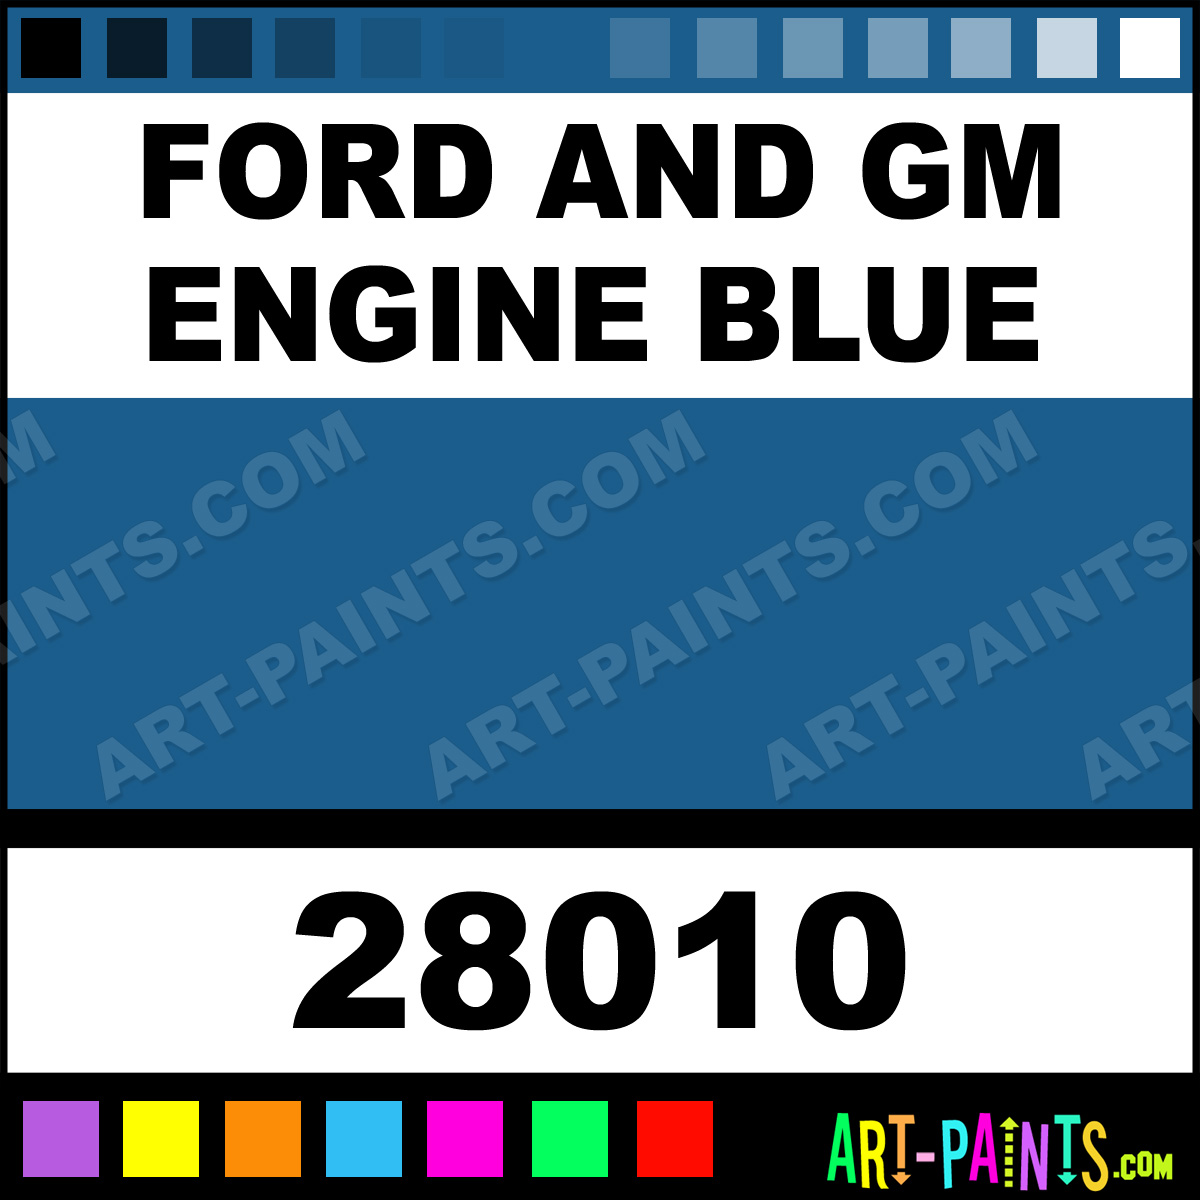 Ford And Gm Engine Blue Model Master Acrylic Paints 28010 Ford And Gm Engine Blue Paint